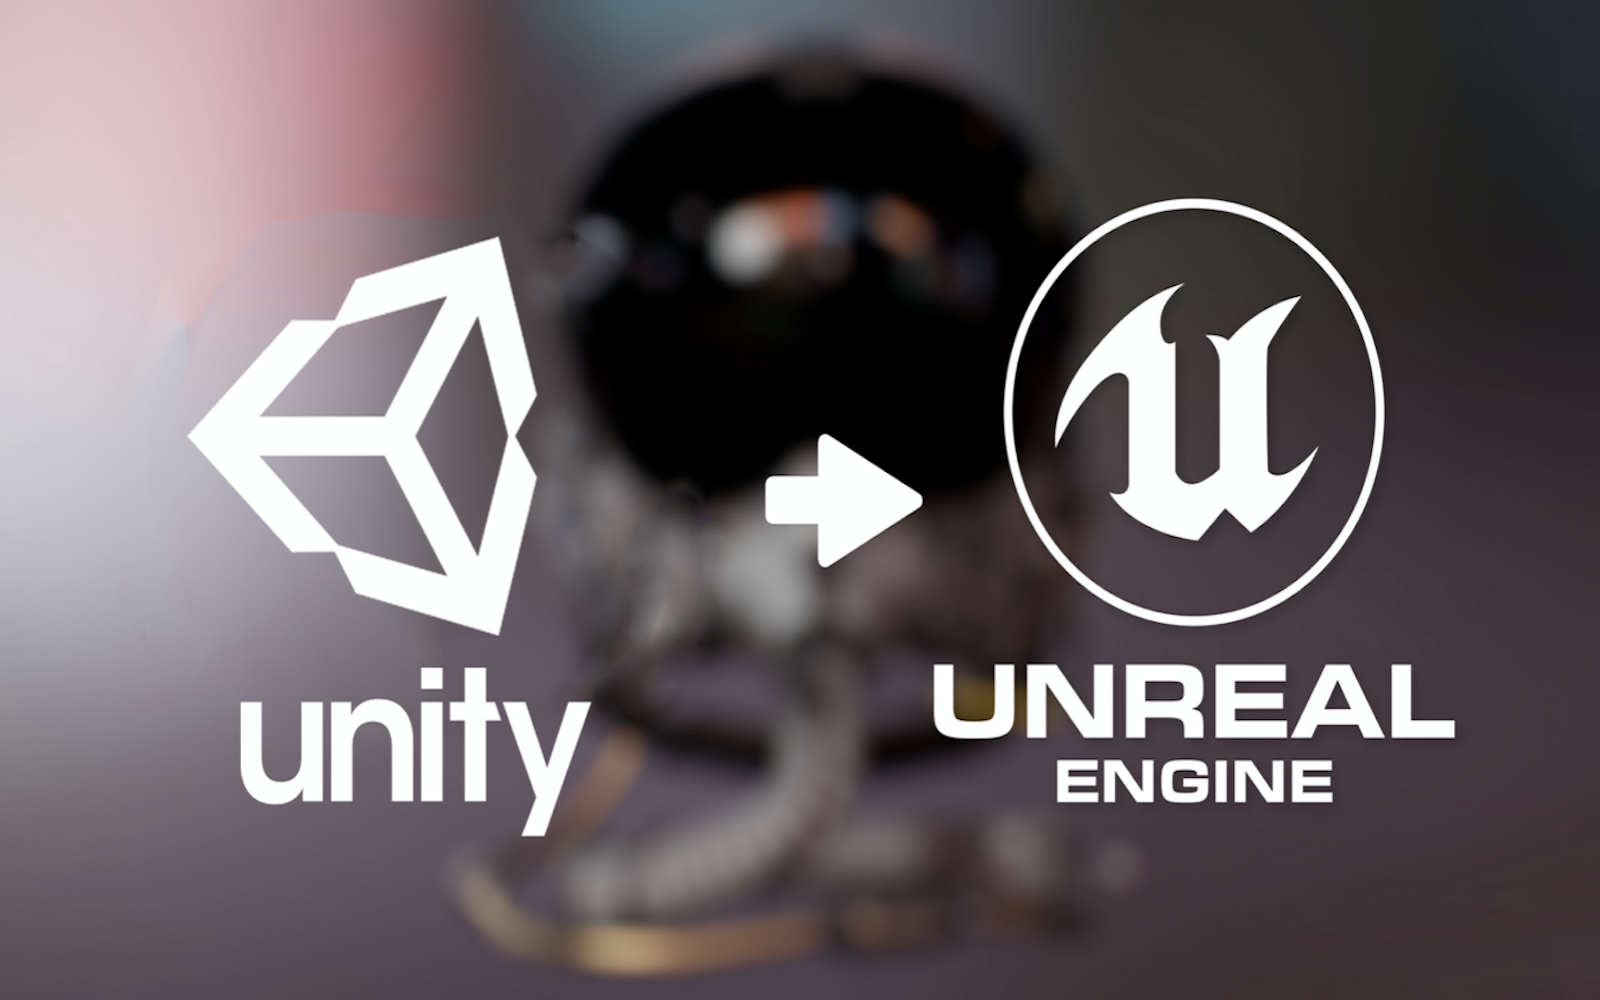 Unity or Unreal Engine?